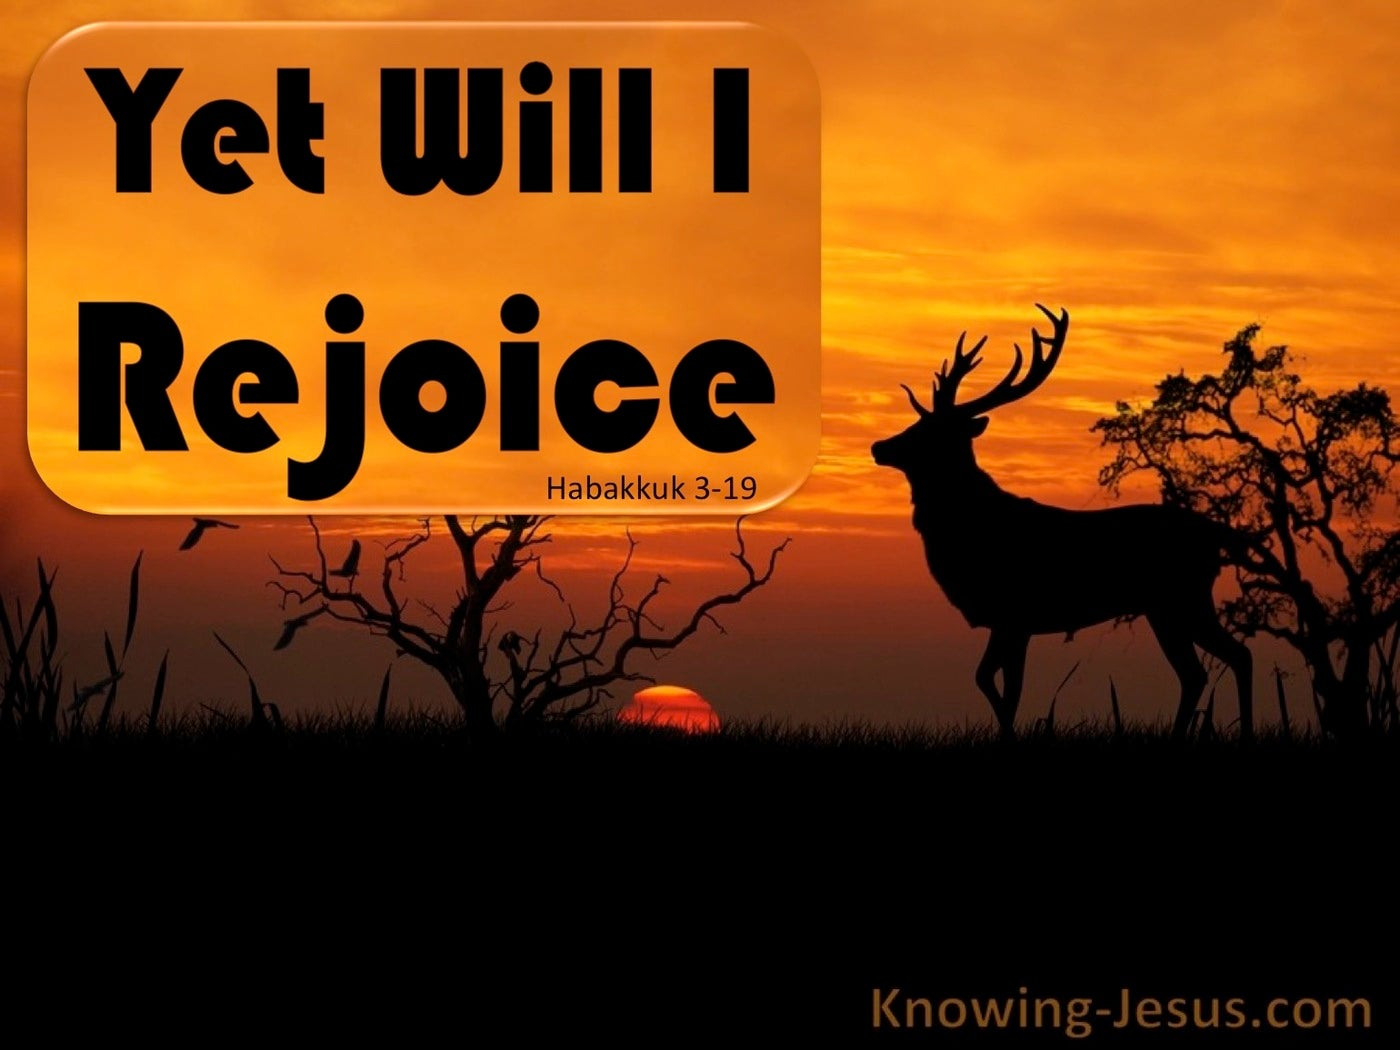 Yet Will I Rejoice (devotional) (black)- Habakkuk 3:19